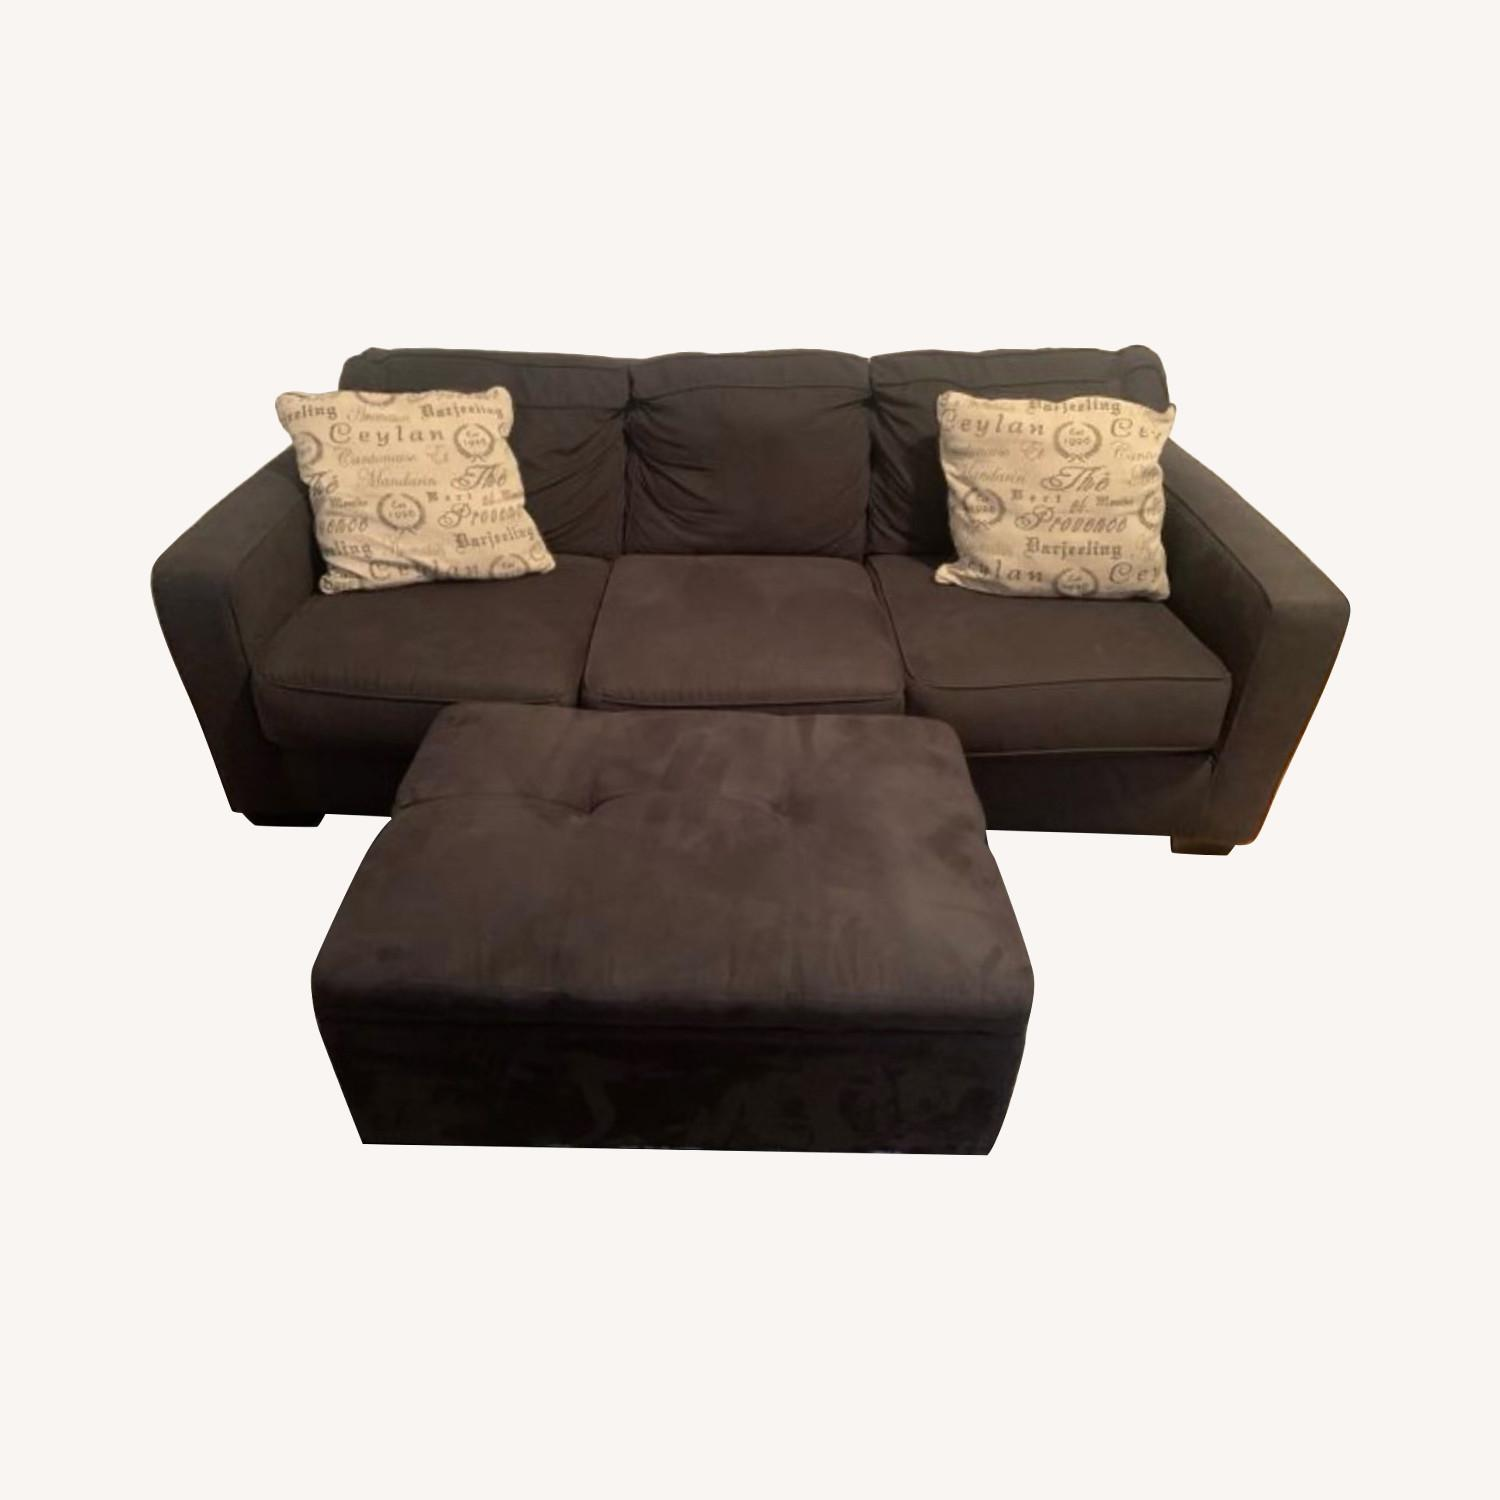 3 Seater Couch Black With Ottoman and 2 Pillows - image-0